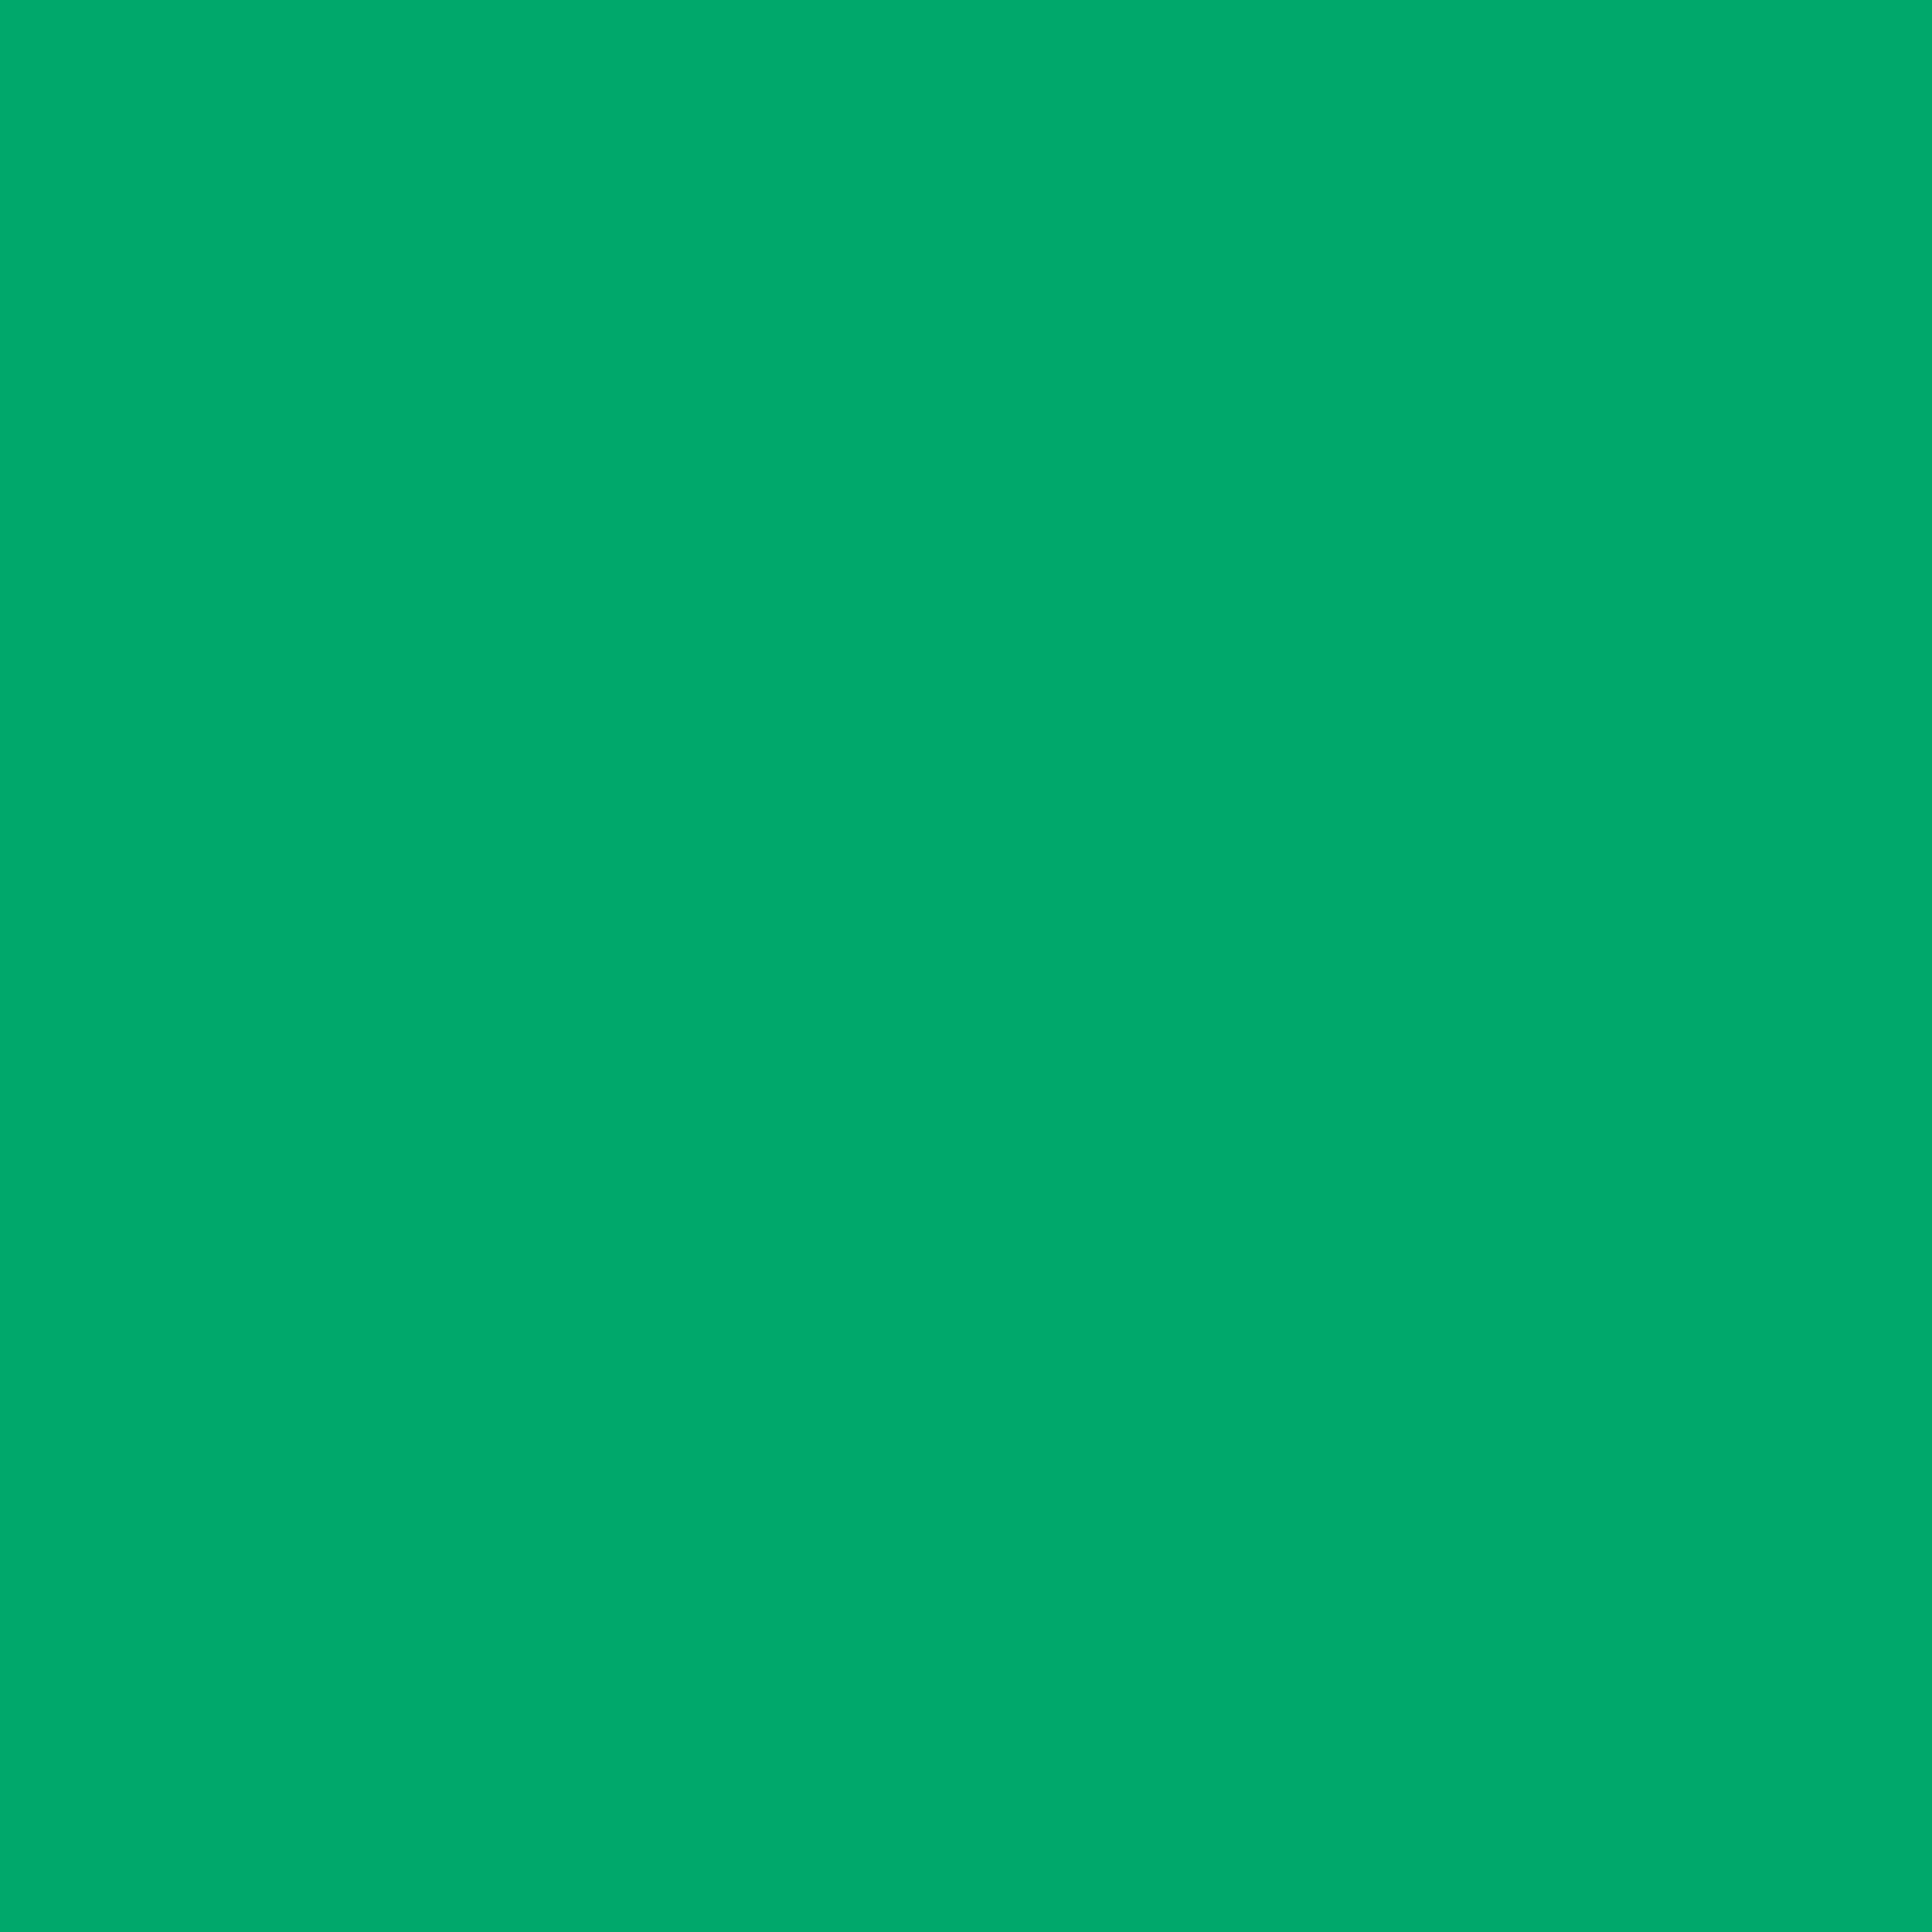 2732x2732 Jade Solid Color Background